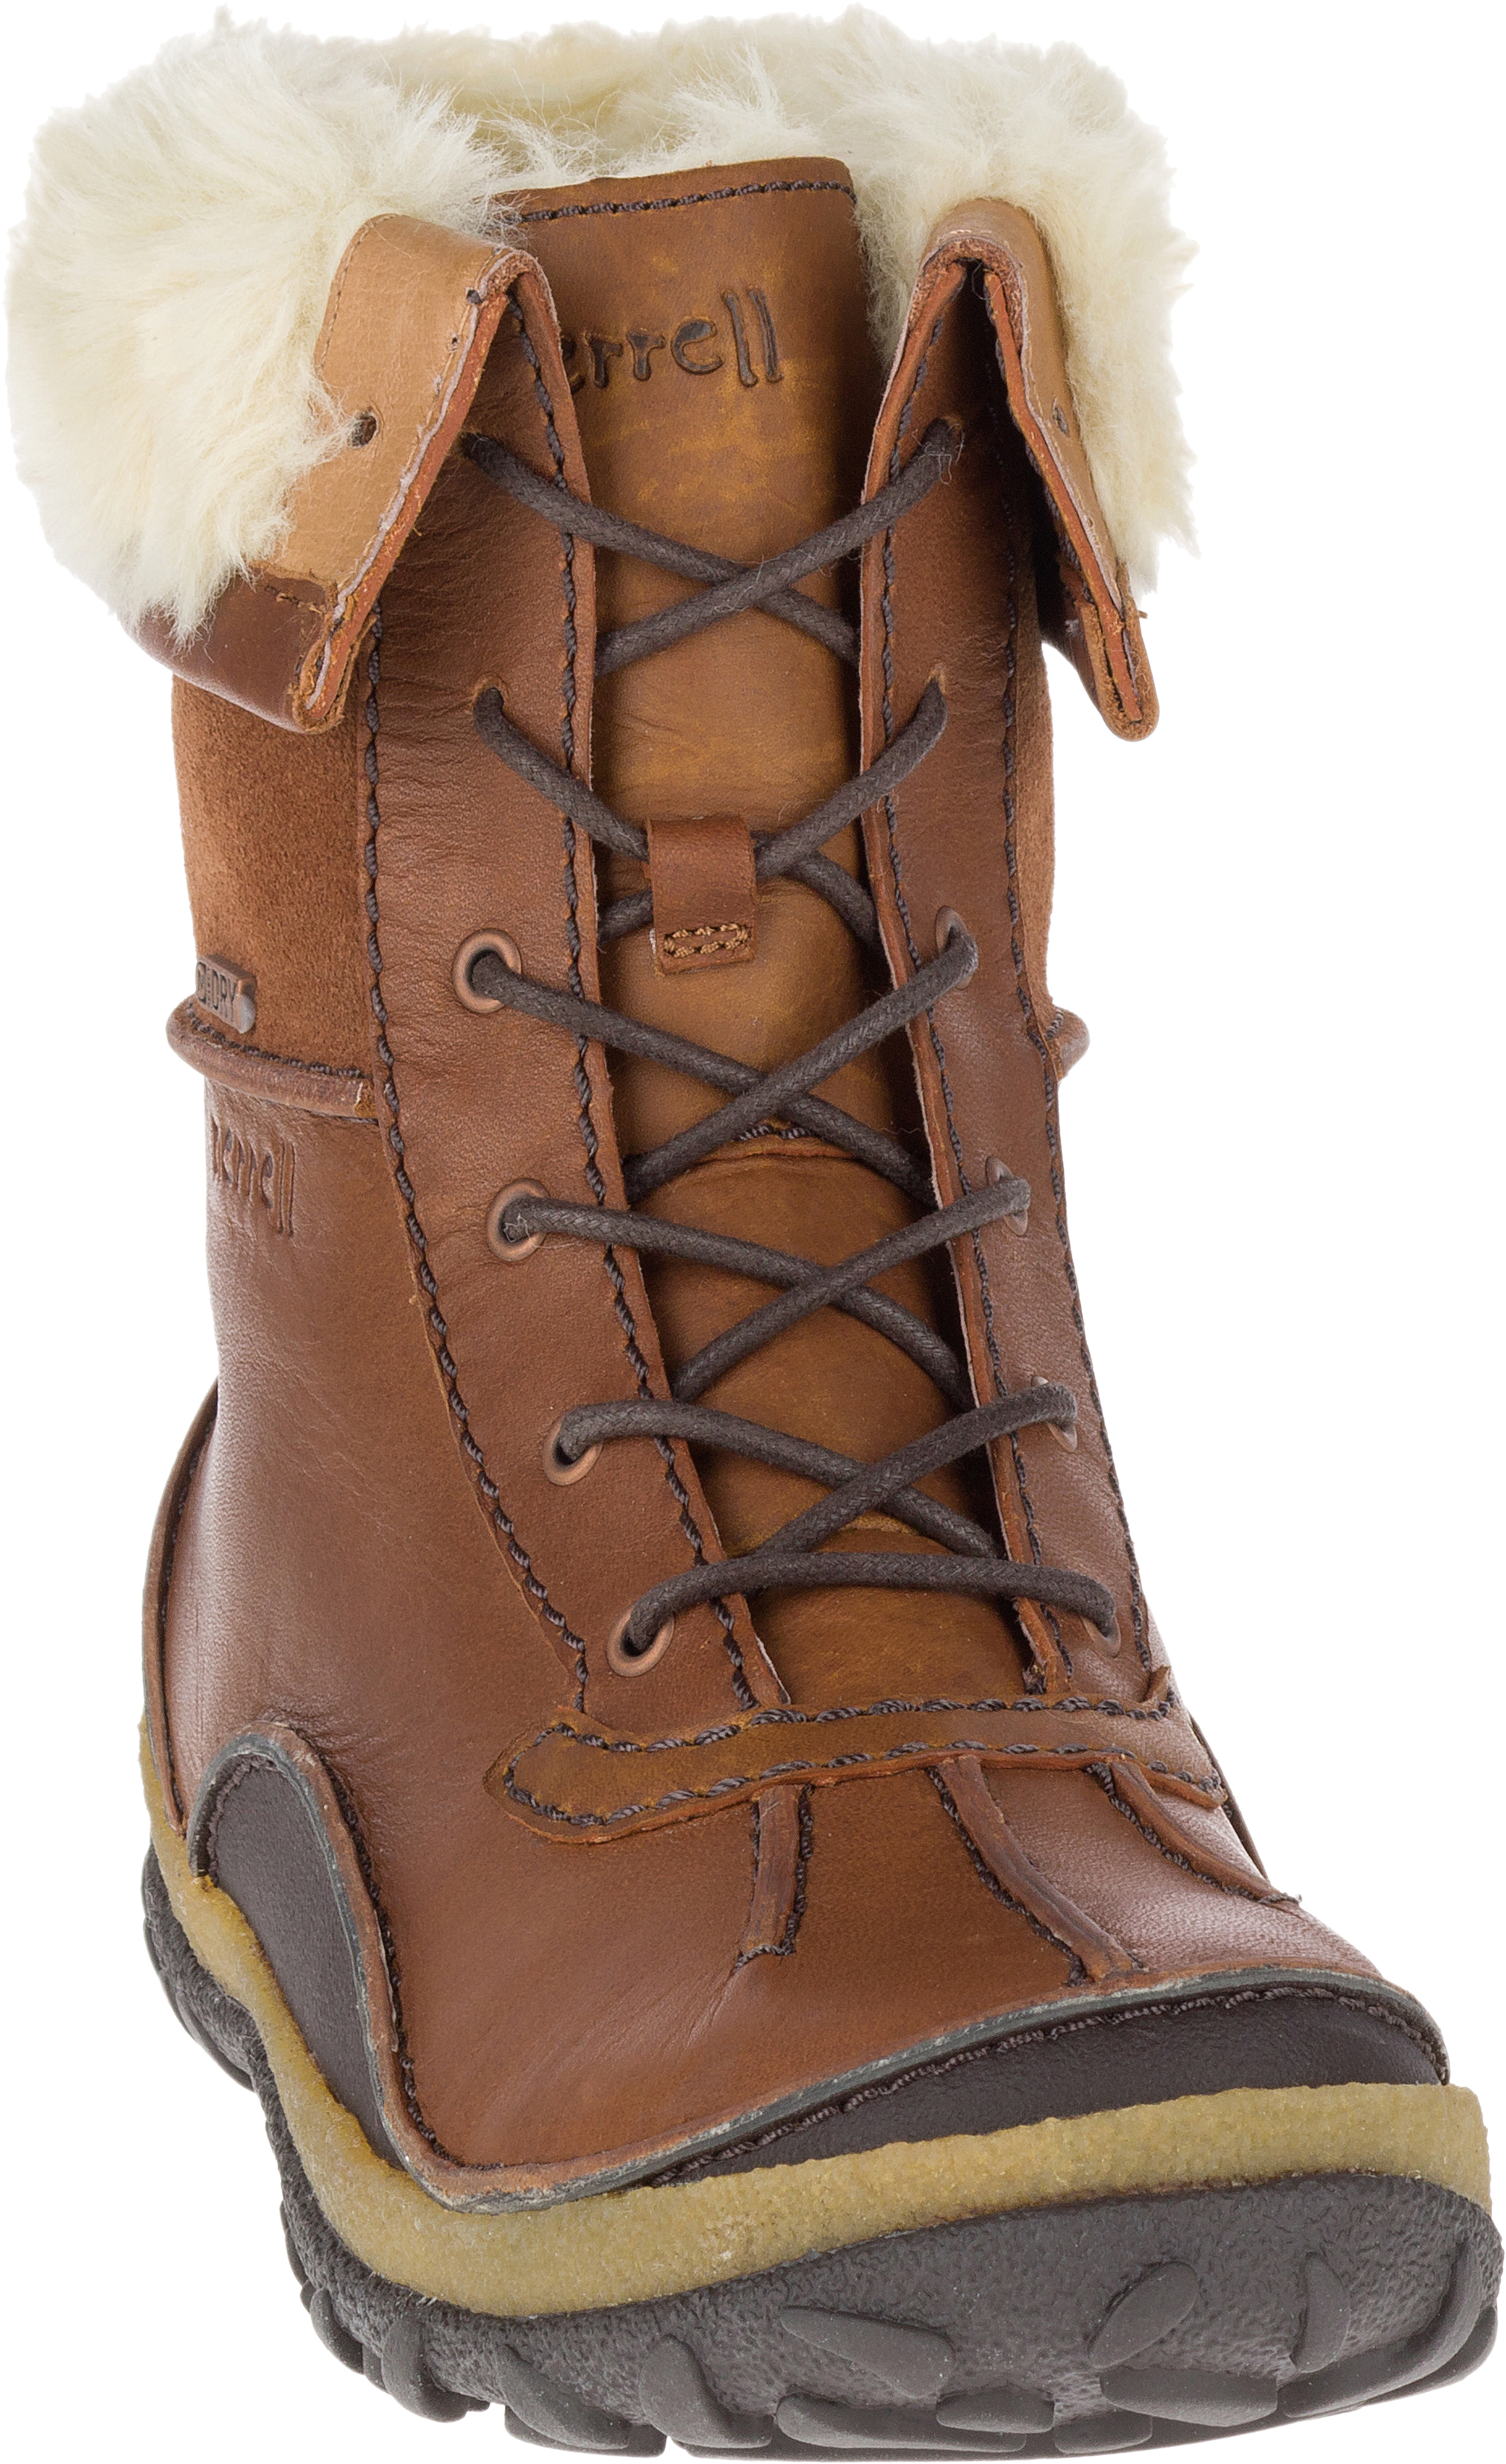 biggest discount undefeated x where can i buy Merrell Tremblant Mid Polar Waterproof Boots - Women's | MEC